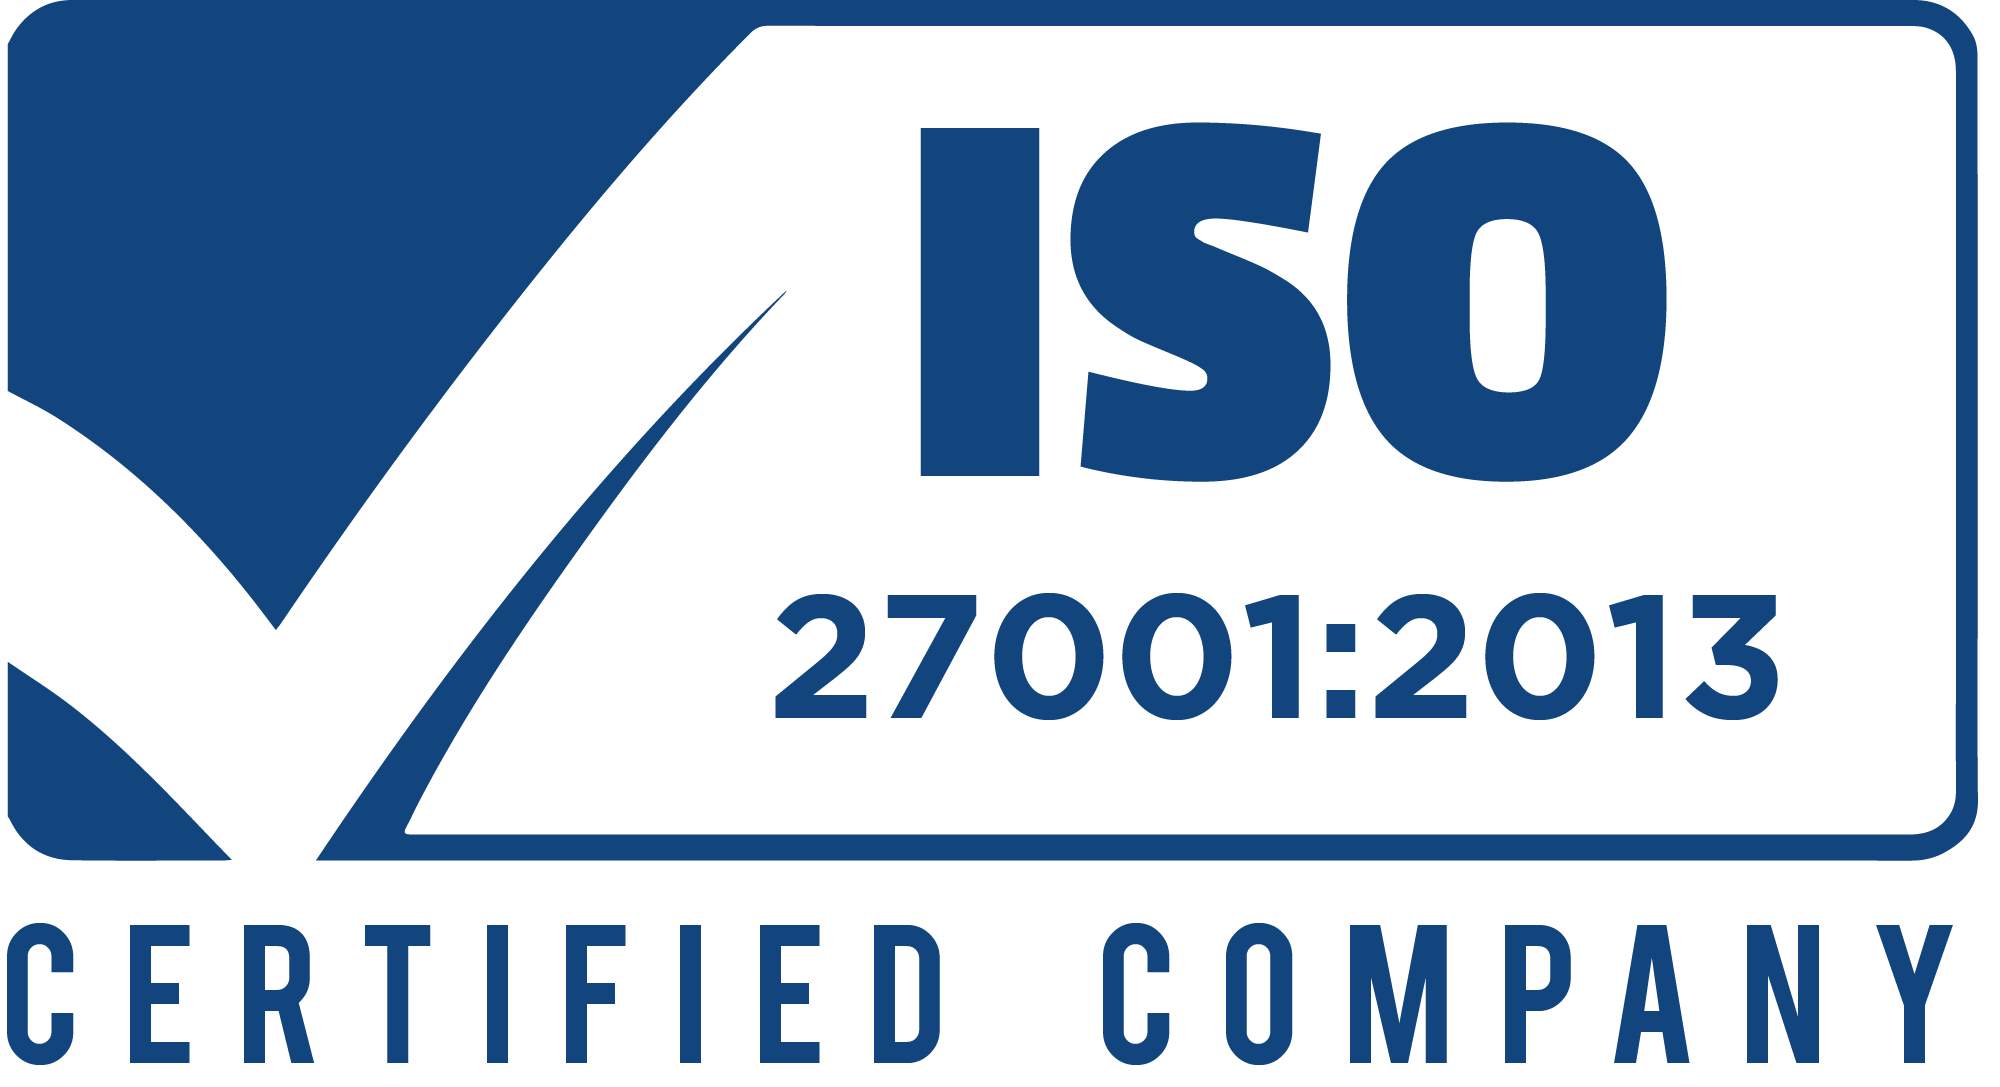 ISO-27001-2013 certified company